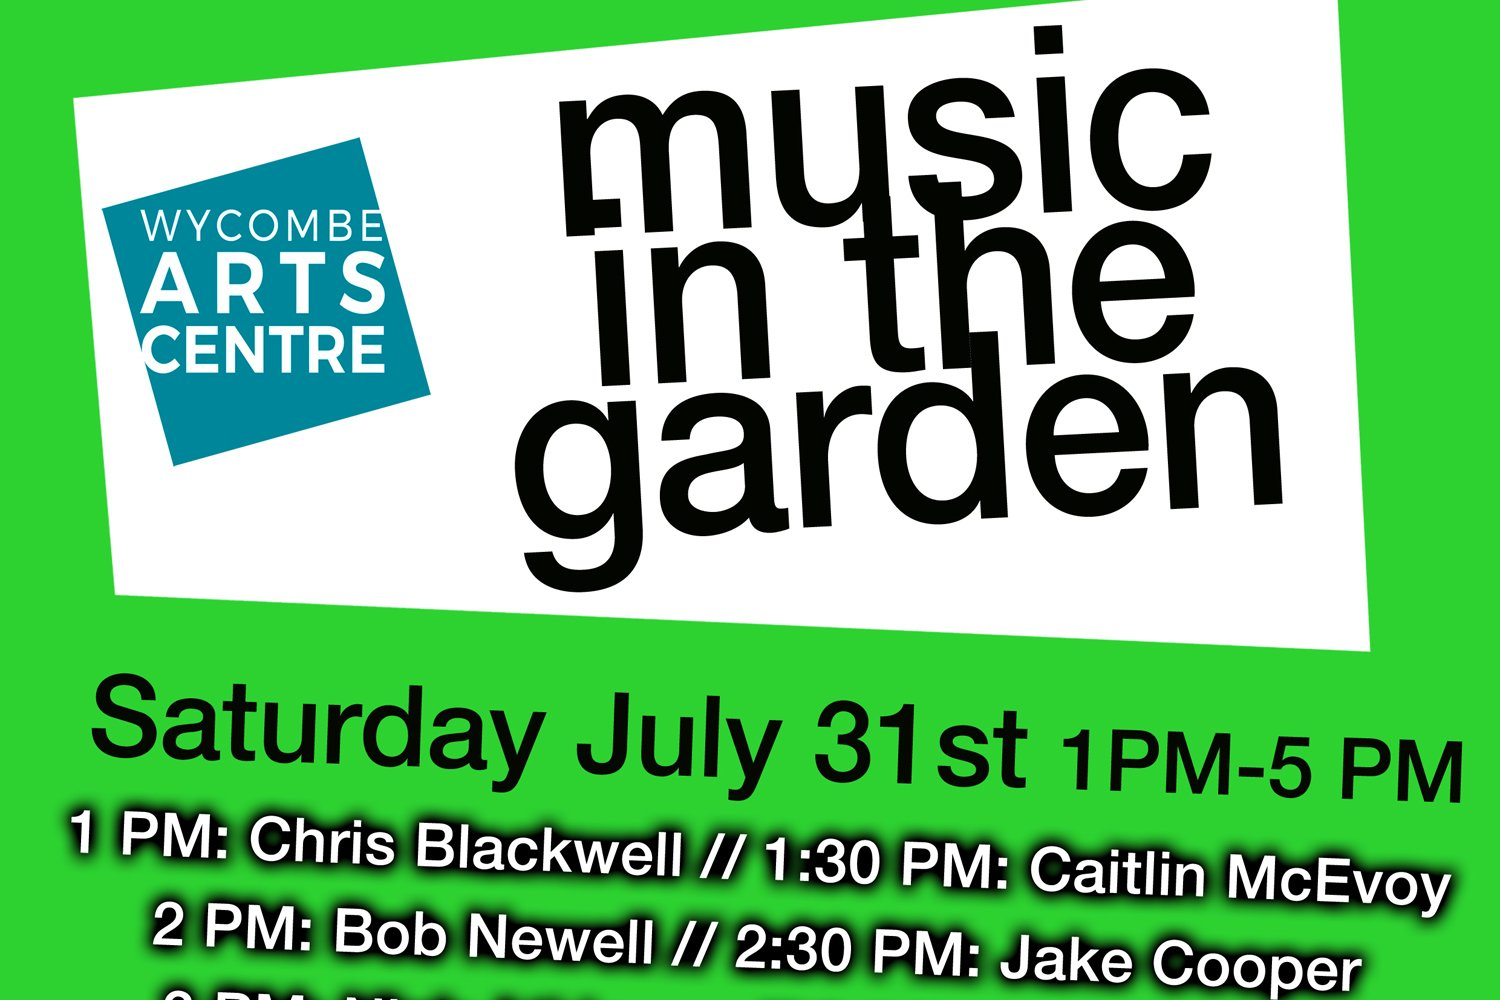 Music in the Garden at Wycombe Arts Centre